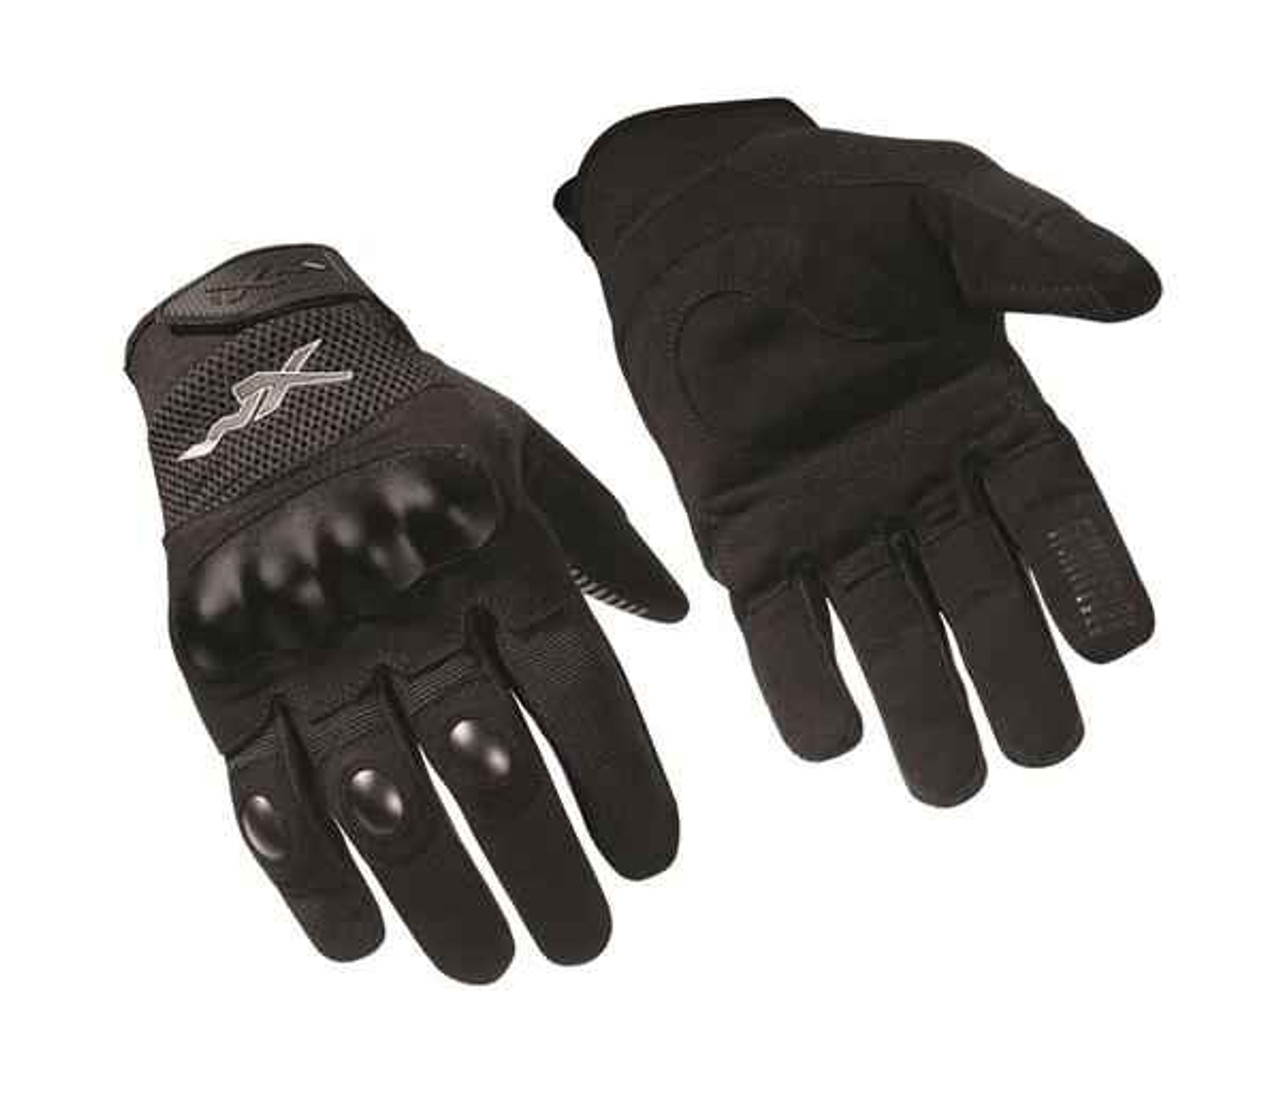 Wiley X Durtac All-Purpose Gloves, Black, Size 2X